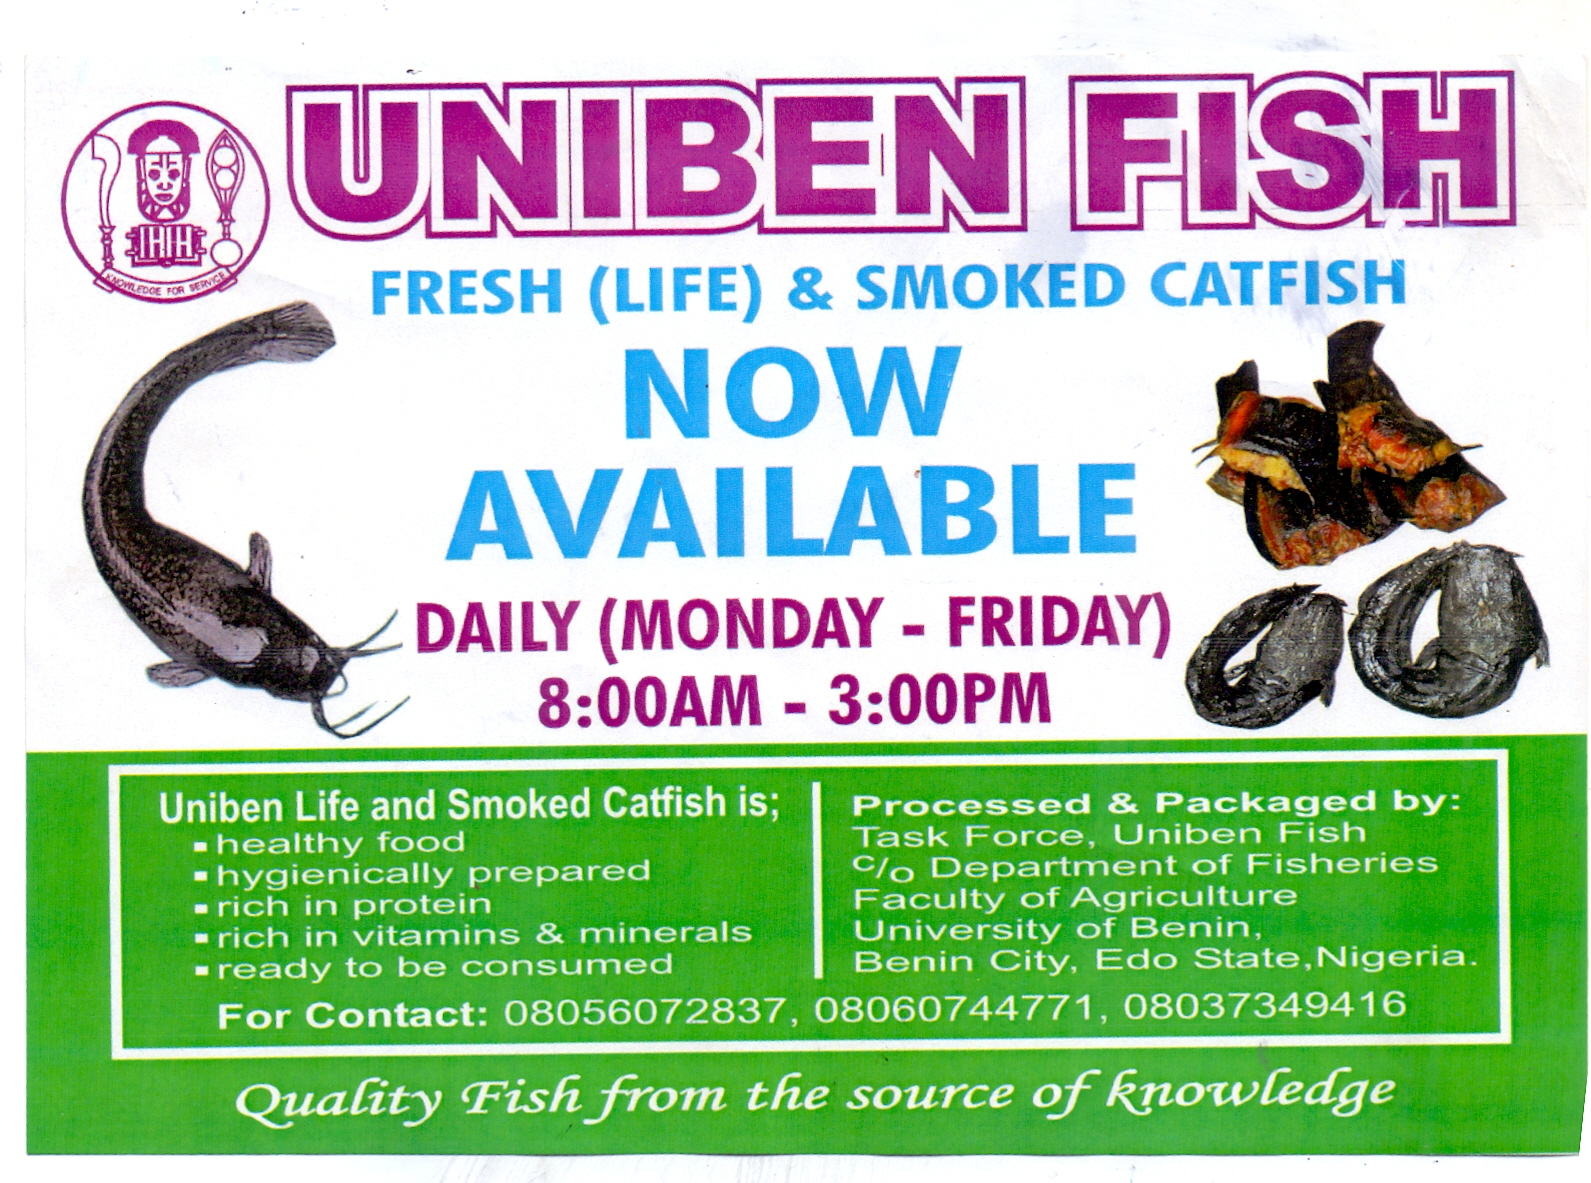 resume When Is Uniben Resuming uniben gist farm project food sales extravaganza see details fresh life smoked catfish now available there will be a daily from monday to friday 800am 300pm for requ